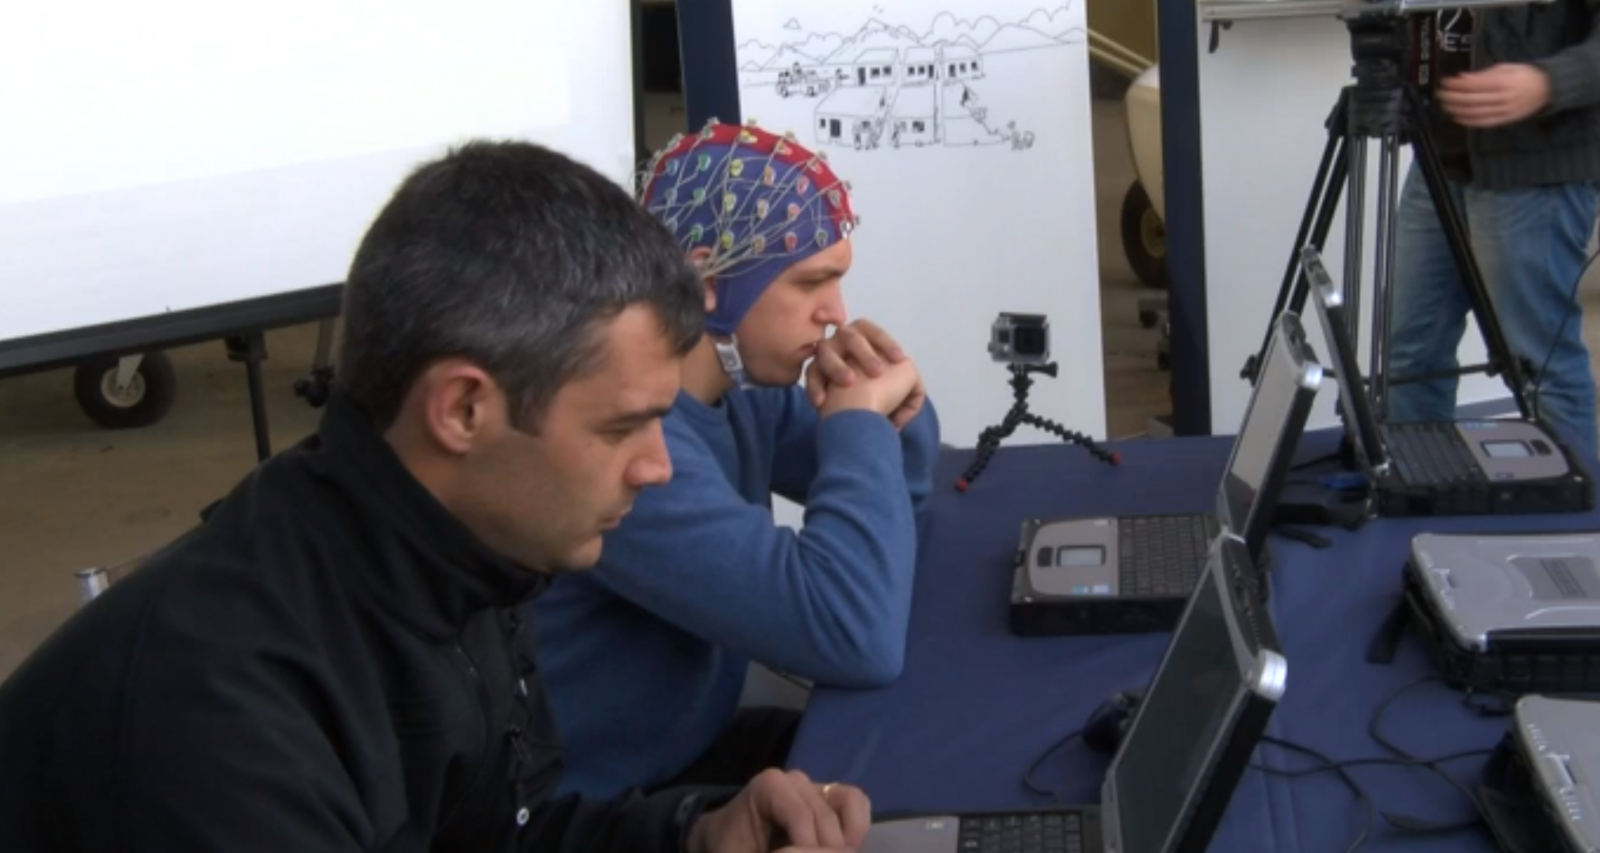 Brain-controlled drone shown off for the first time